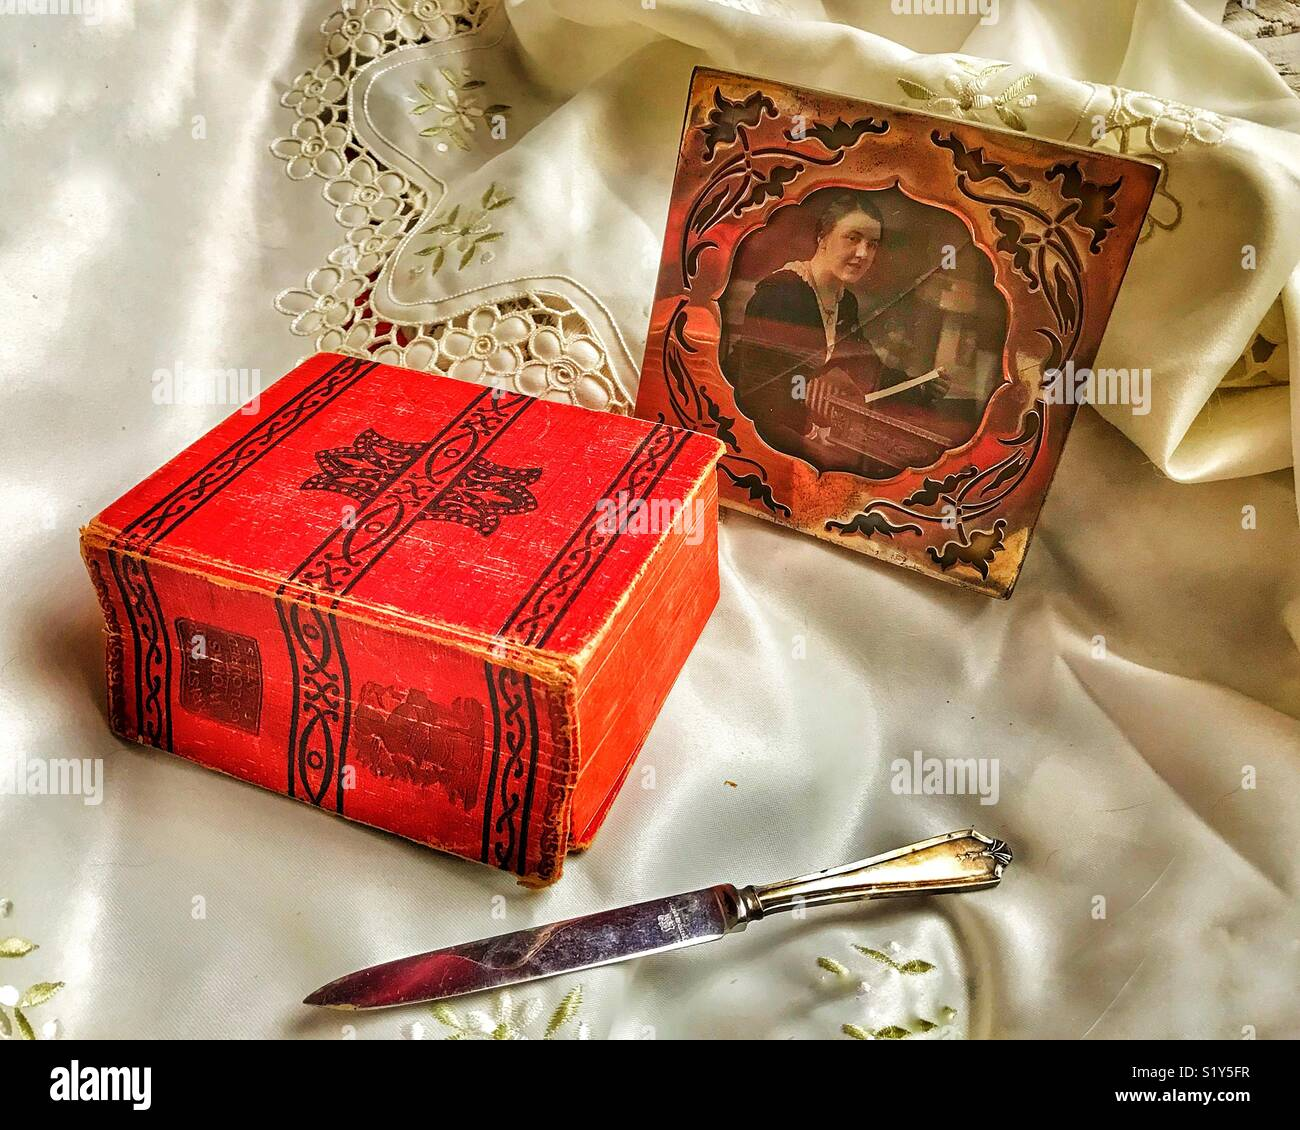 Still life antique arrangement of a silver photo frame, a silver letter opener and a book of Aristotle's Works Stock Photo